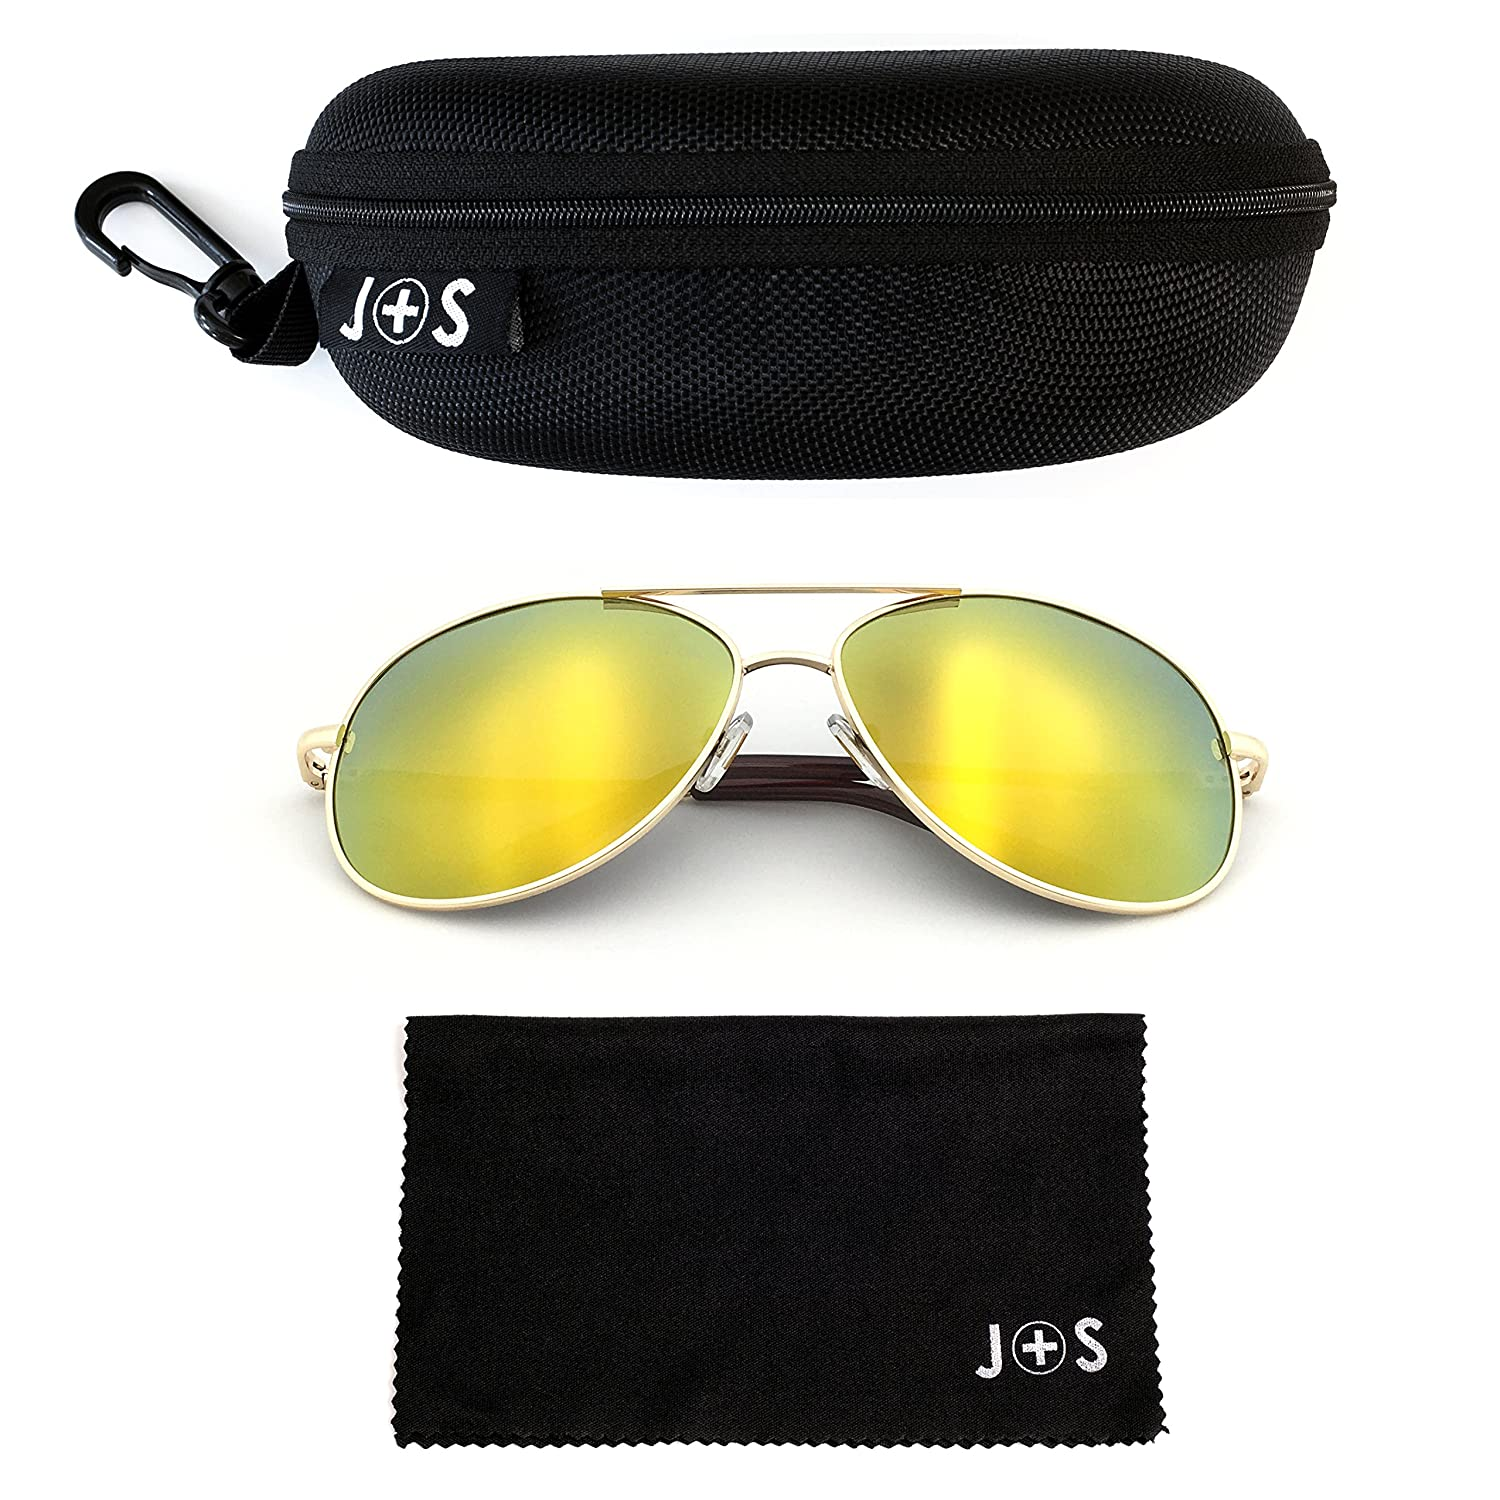 J+S Premium Military Style Classic Aviator Sunglasses, Polarized, 100% UV protection (Large Frame - Silver Frame/Green Mirror Lens